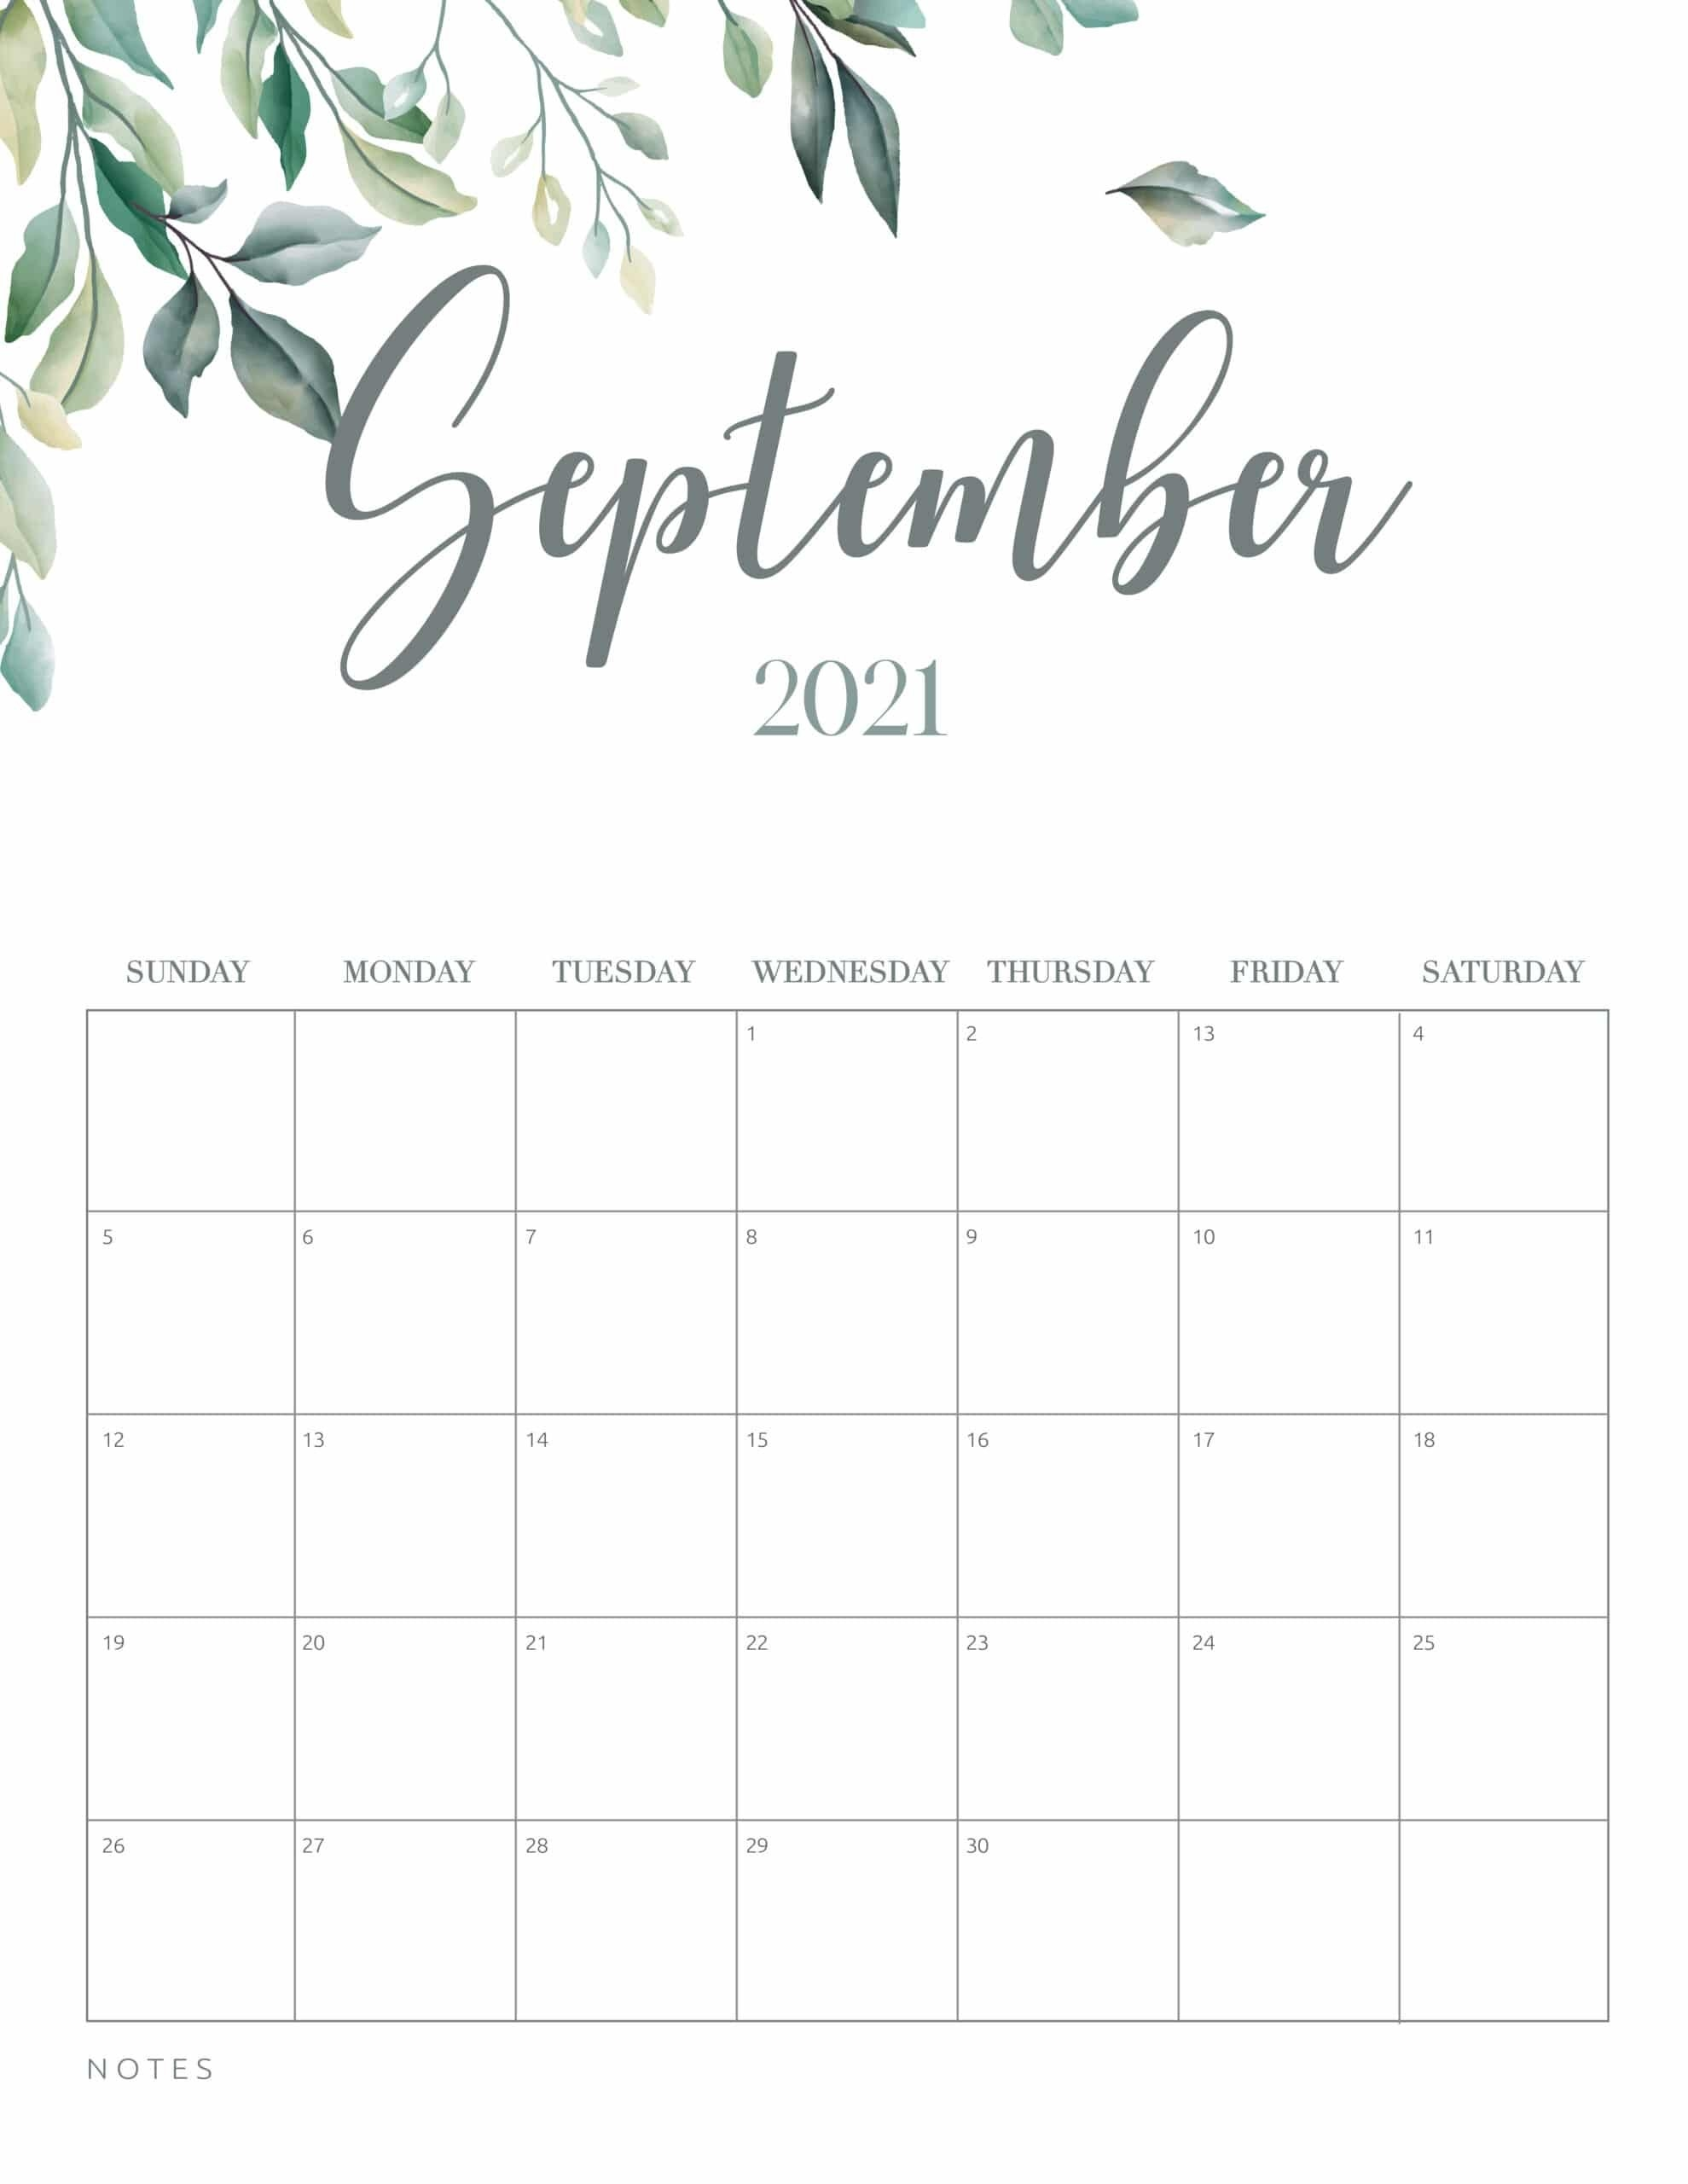 Free Printable 2021 Calendar Botanical Style - World Of Printables for Which Calendar Year Match 2021